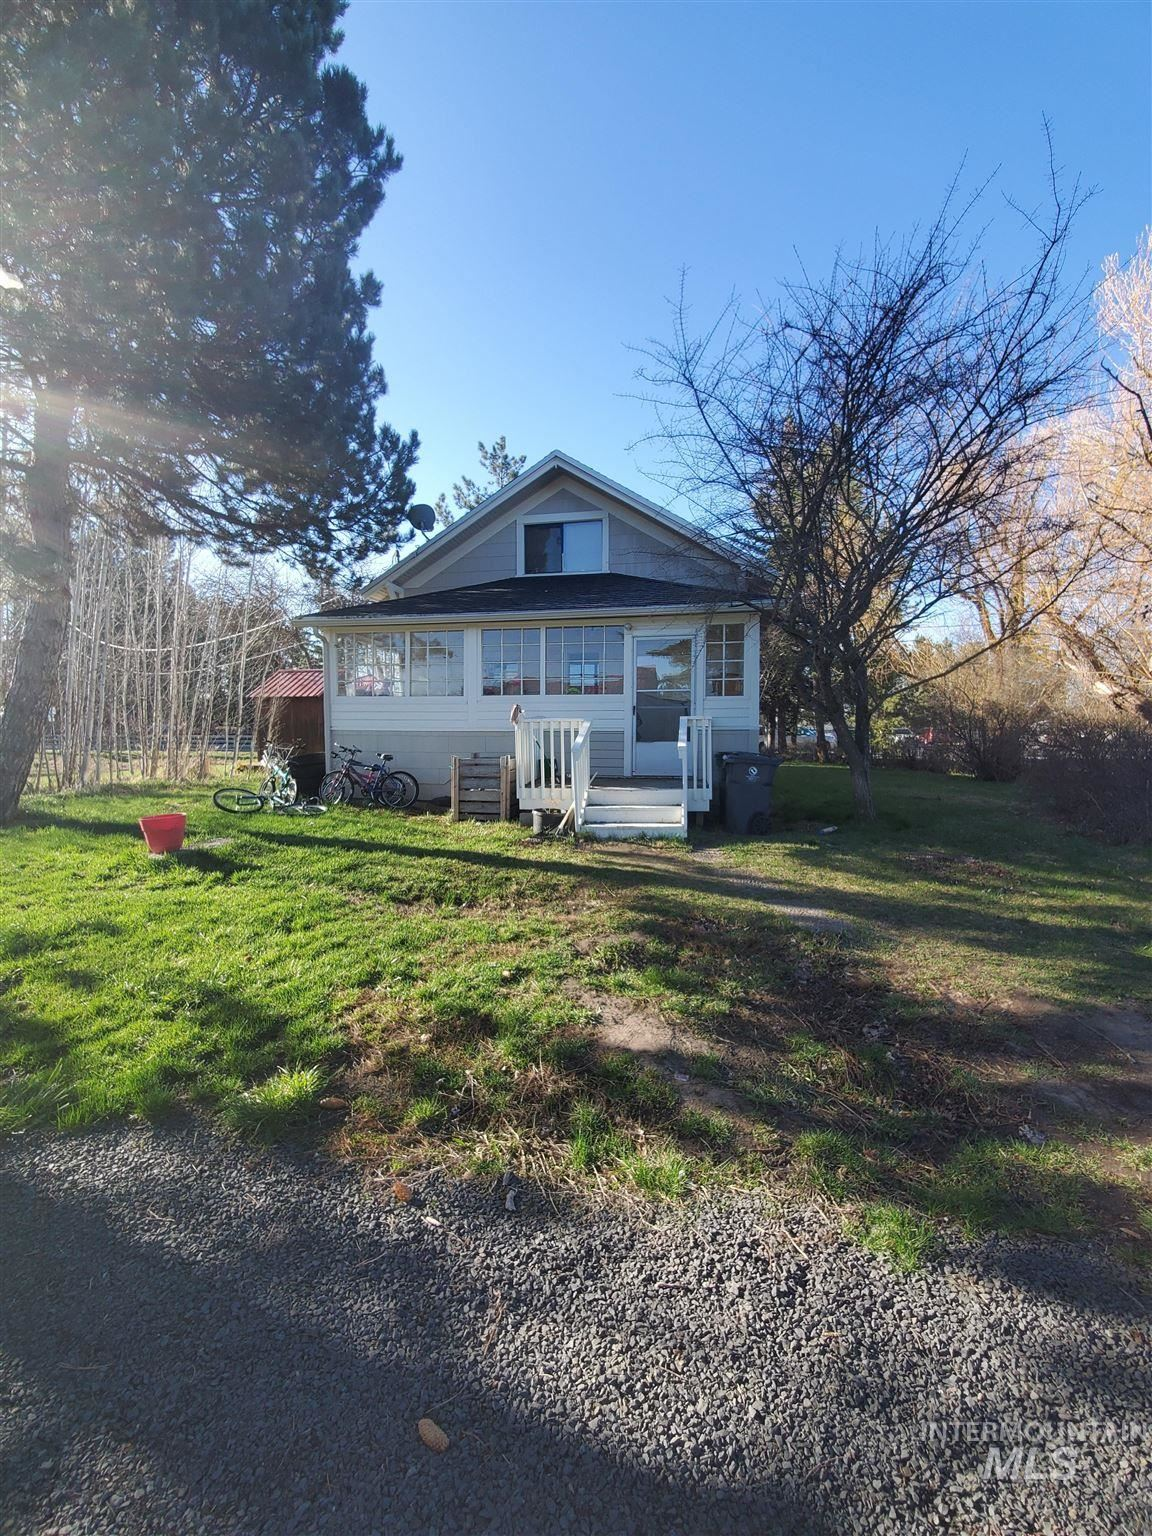 Photo of 1604 E D, Moscow, ID 83843 (MLS # 98809867)